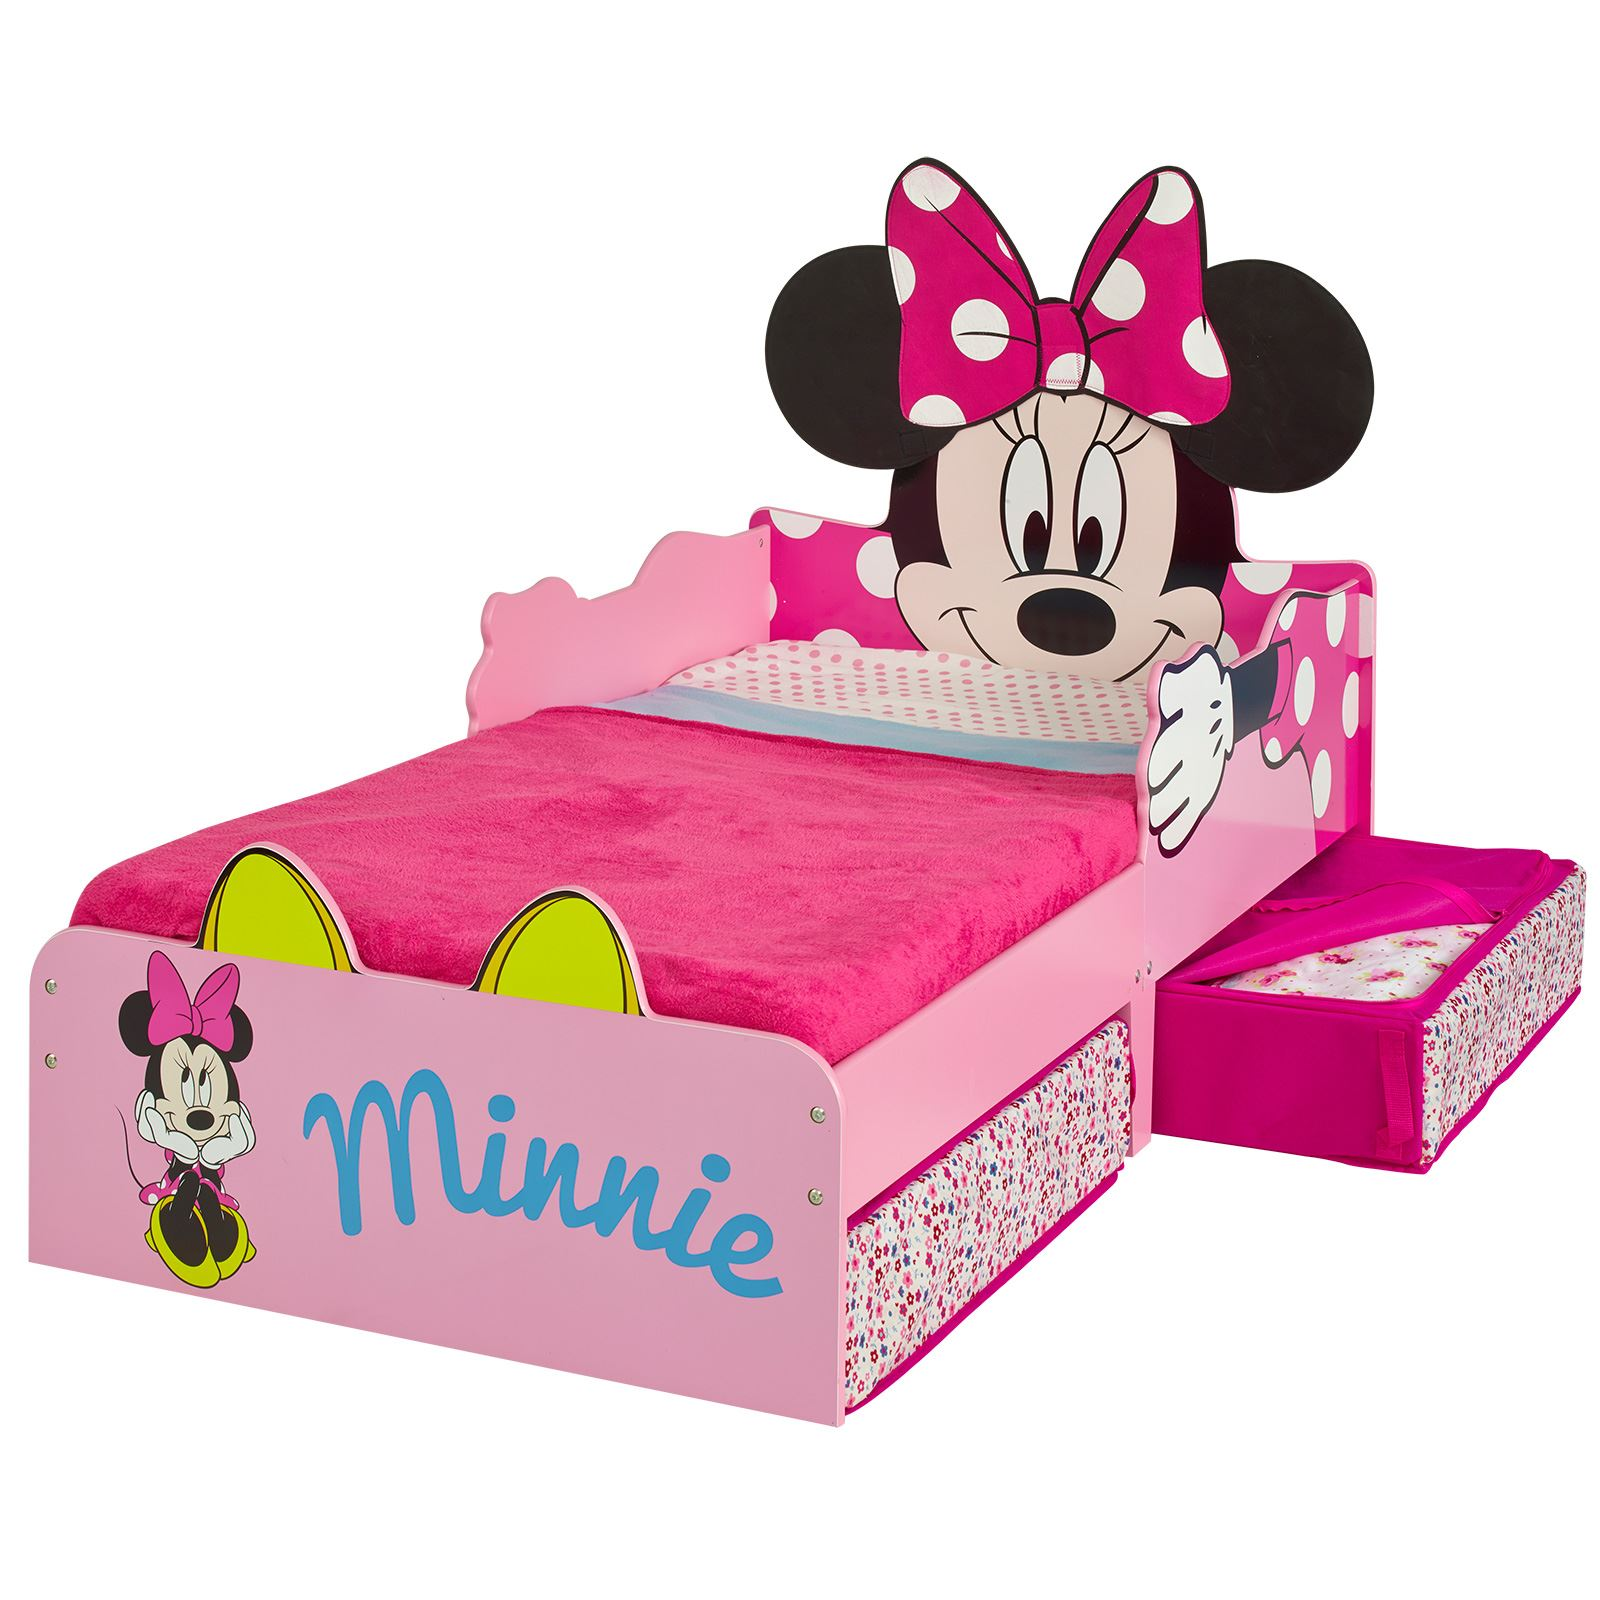 minnie mouse mdf kleinkind bett mit lager federkernmatratze ebay. Black Bedroom Furniture Sets. Home Design Ideas